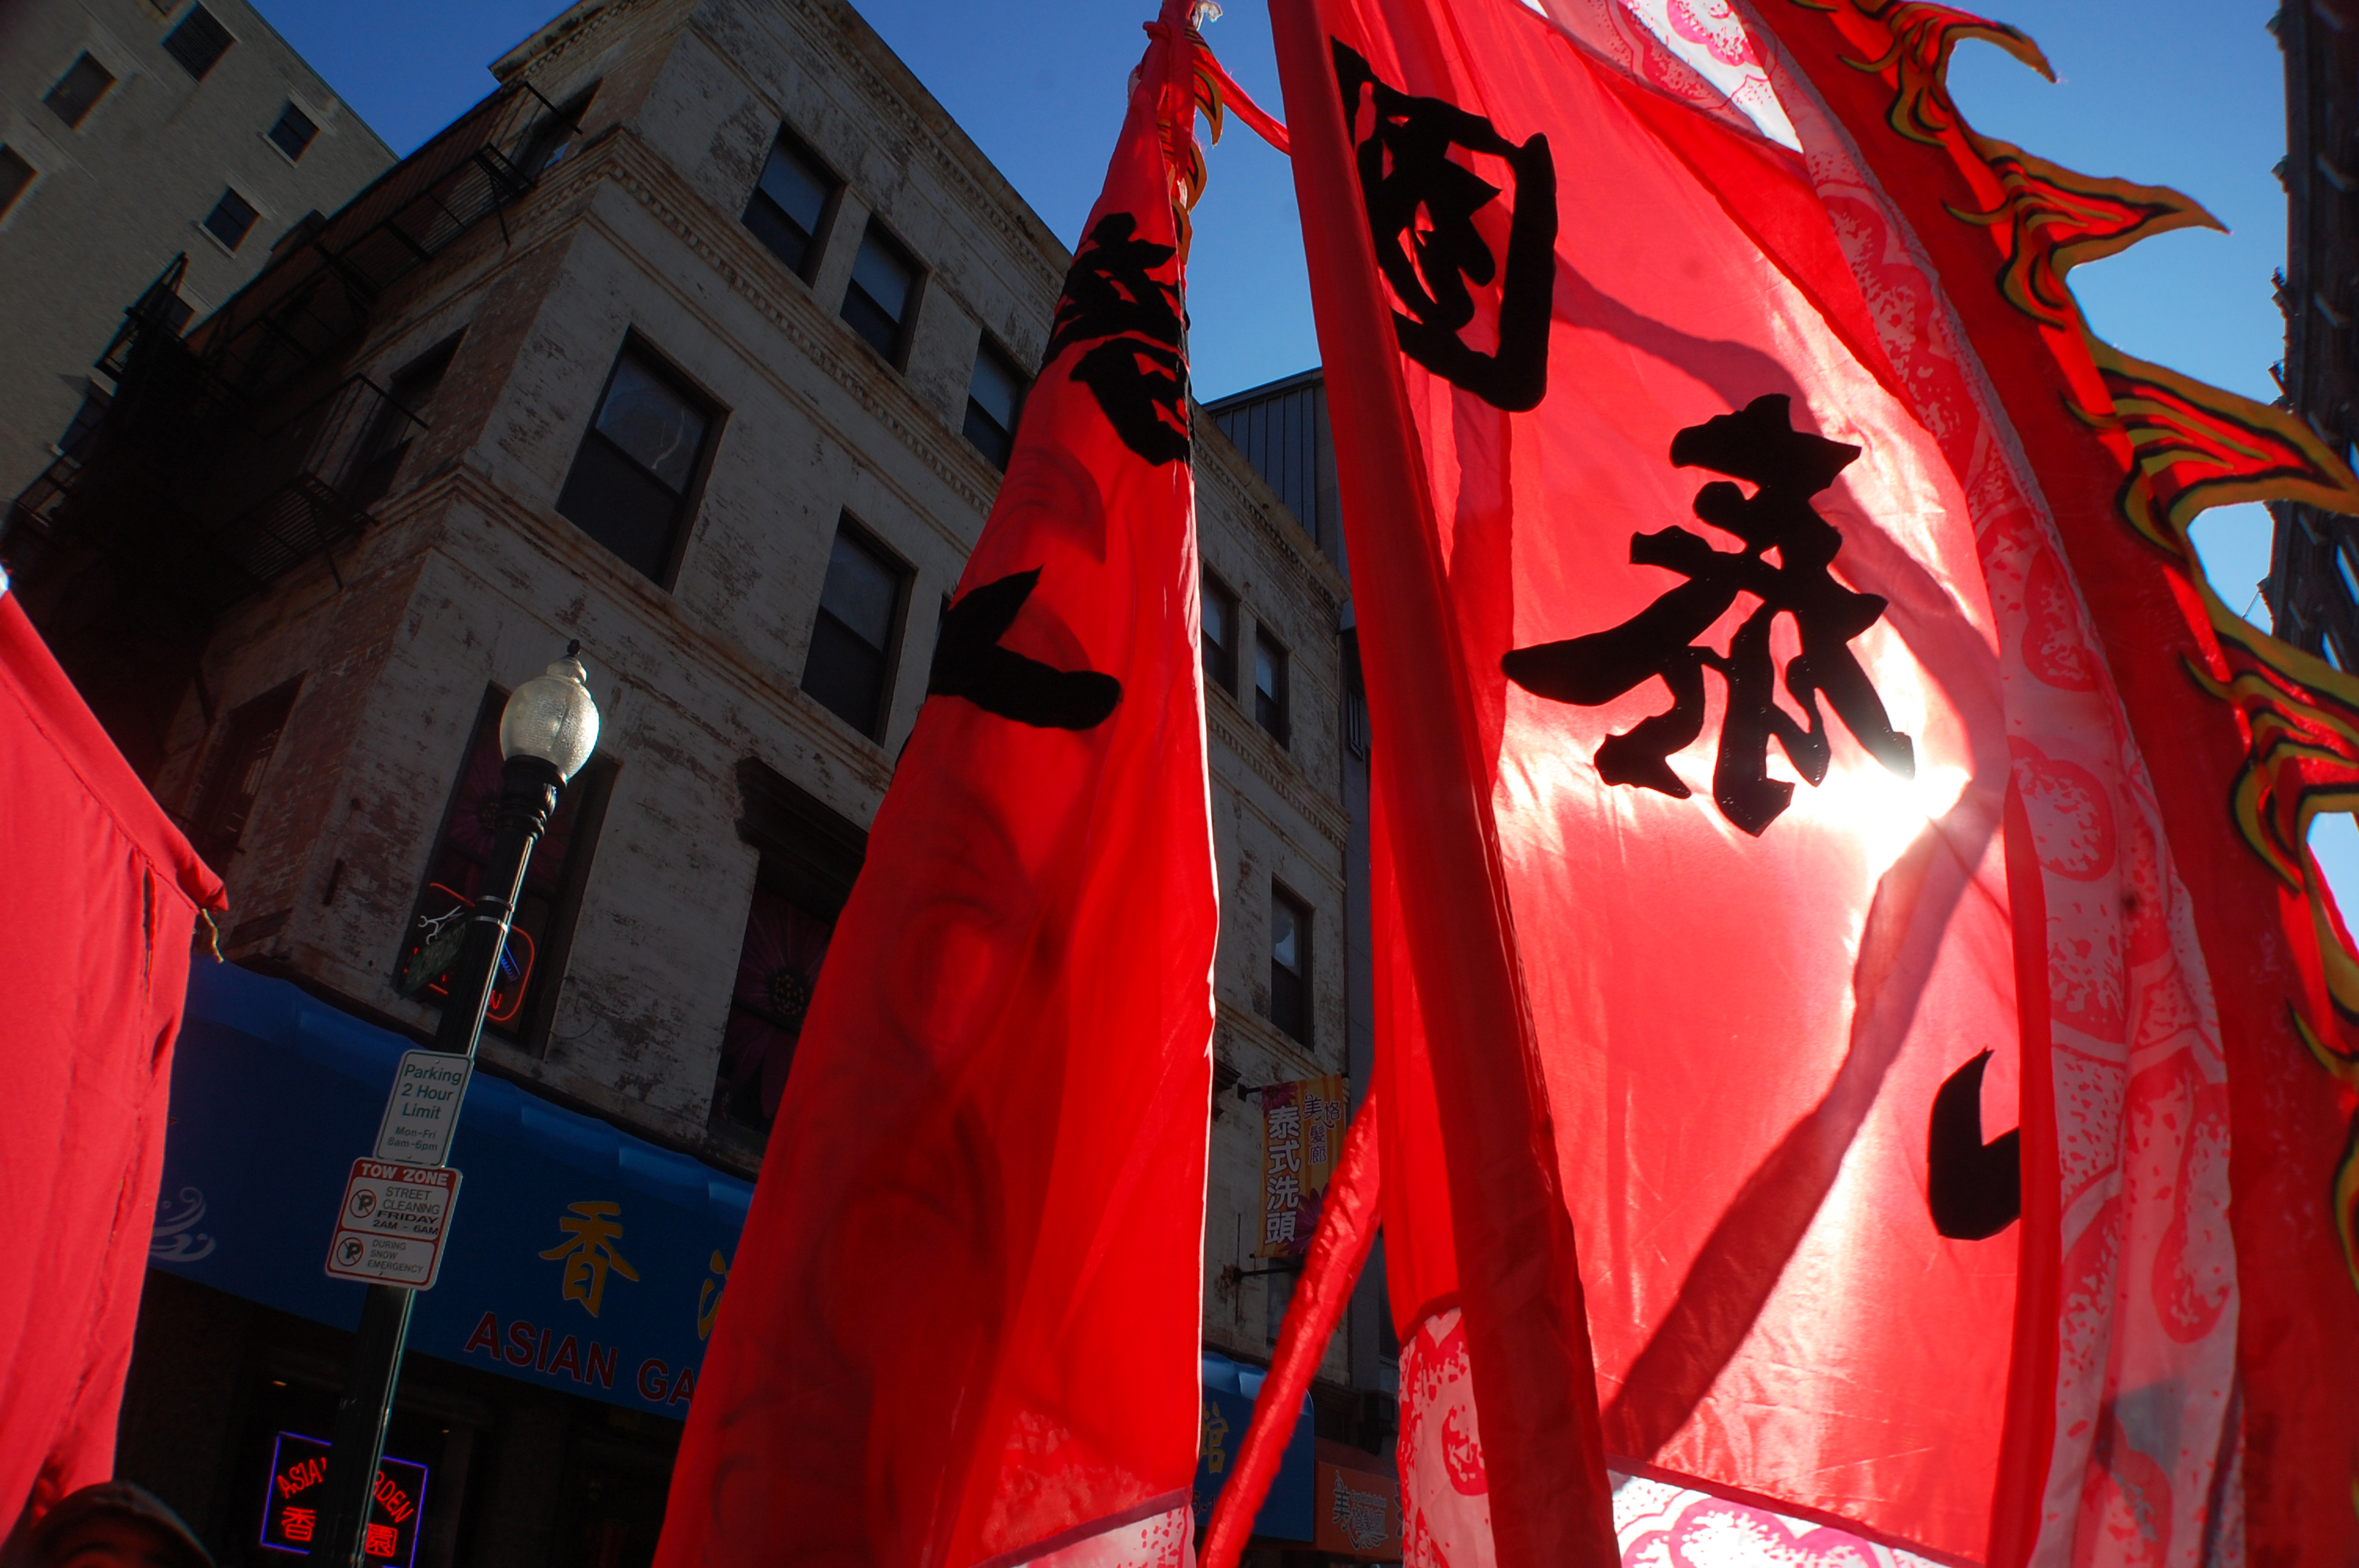 Chinese flags were raised high through the streets of Chinatown